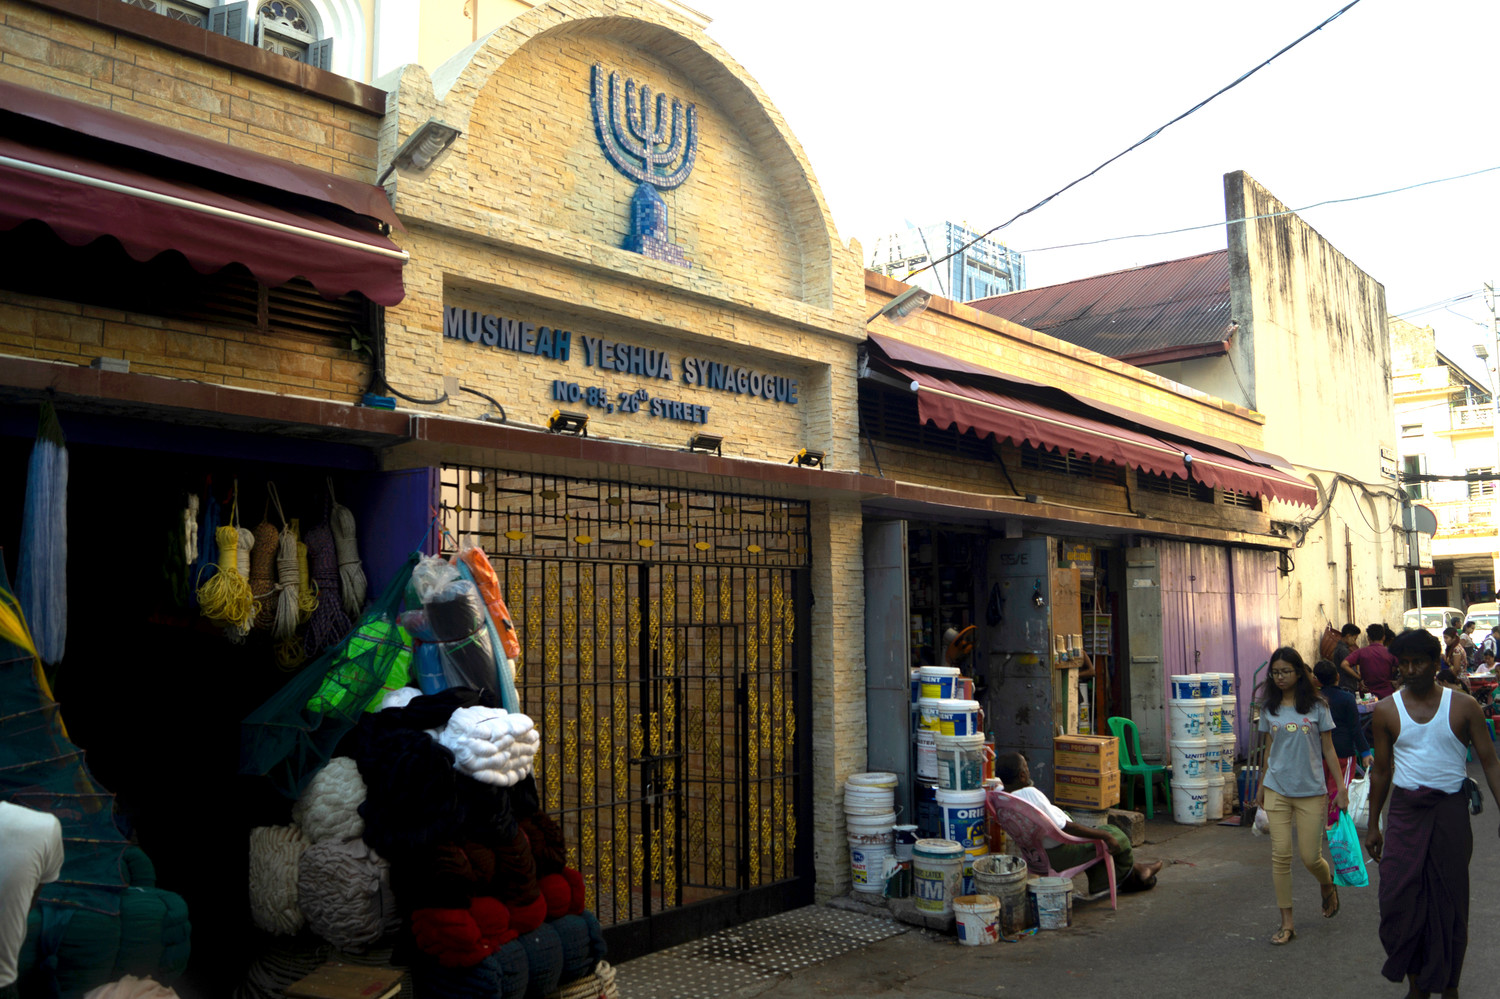 Yangon's Musmeah Yeshua Synagogue dates to the 19th century.